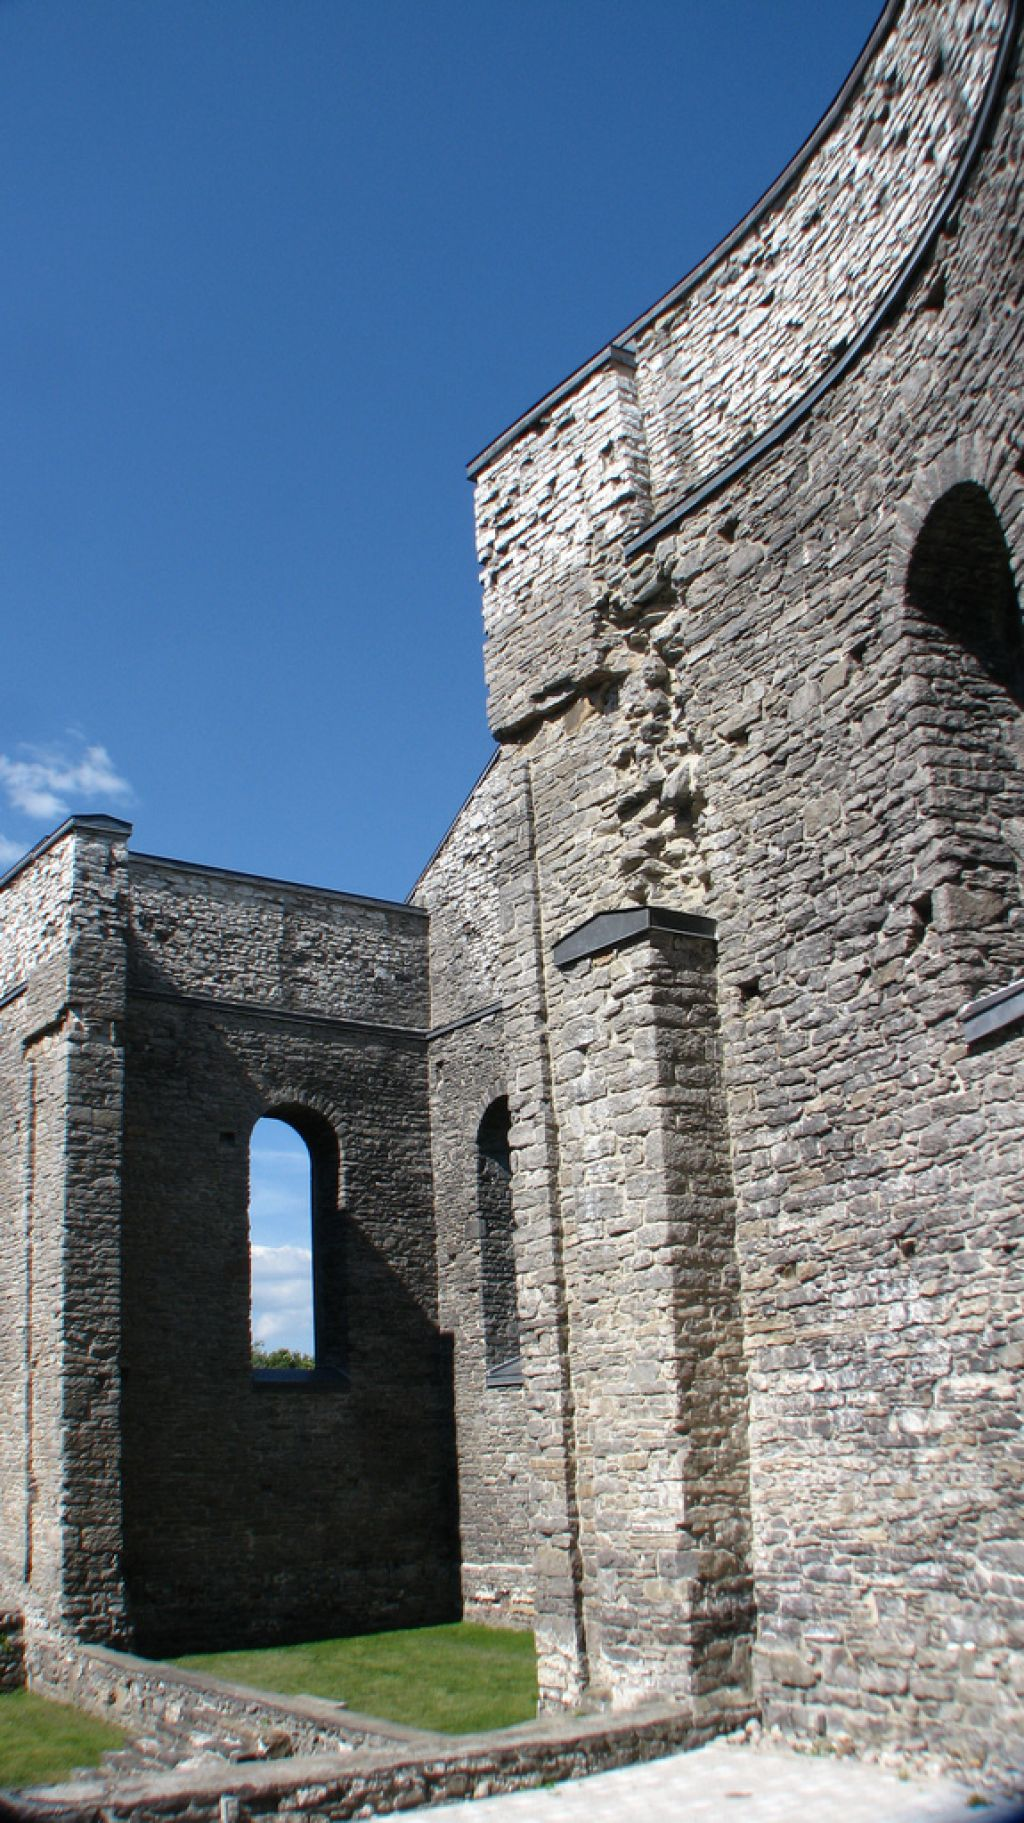 national historic site3 St. Raphaels Ruins in Ontario, Canada